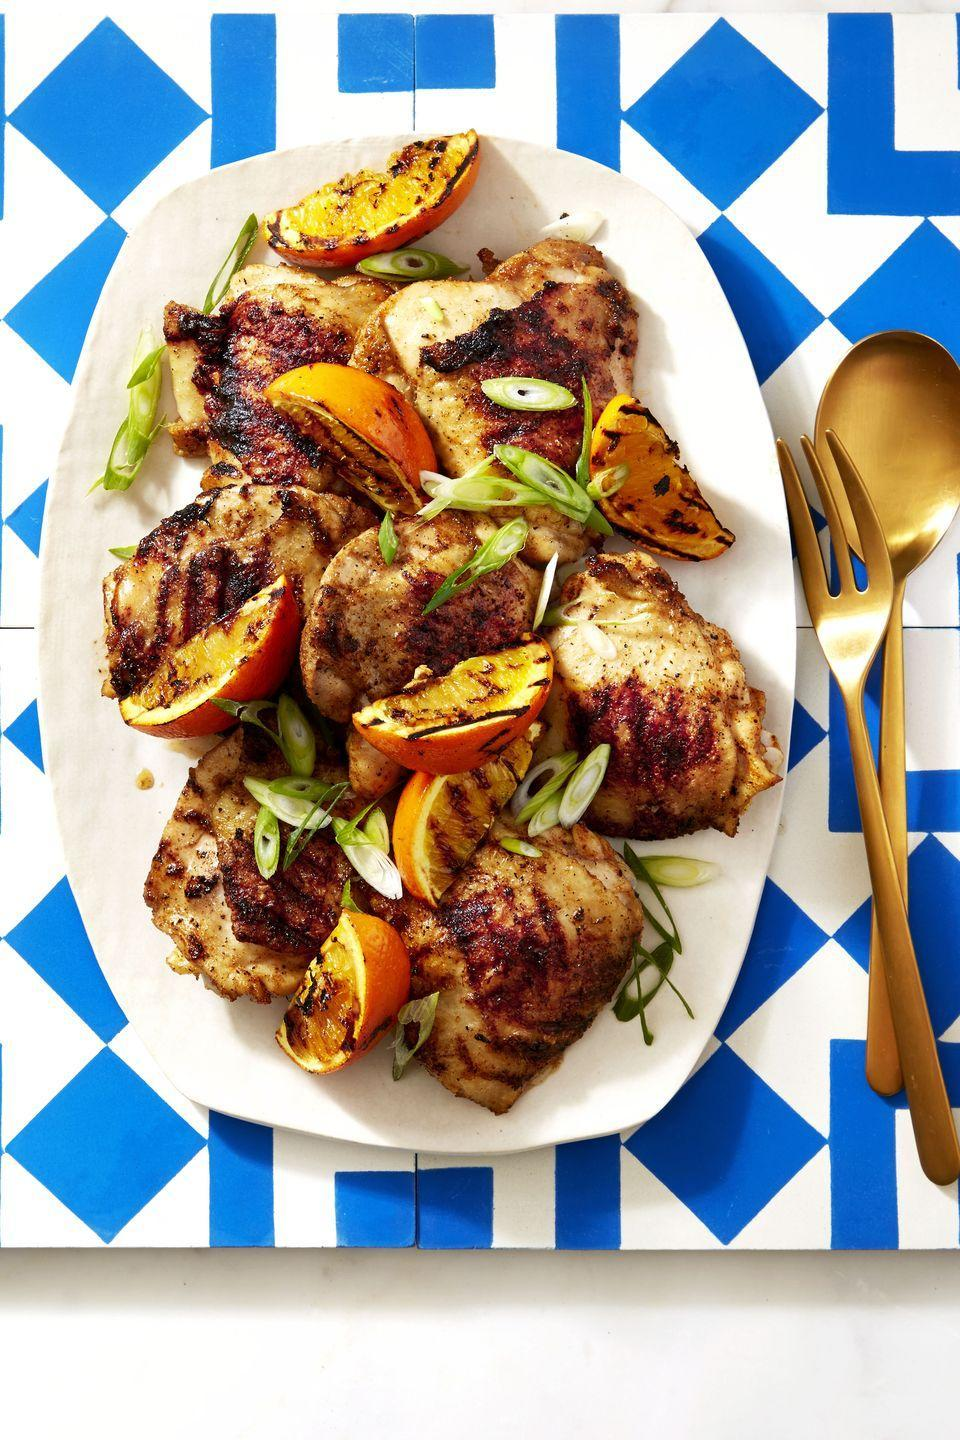 "<p><span>Everyone needs a standout grilled chicken recipe, and these spicy and citrusy thighs are our go-to.</span></p><p><span><a href=""https://www.goodhousekeeping.com/food-recipes/a39931/chipotle-orange-chicken-recipe/"" rel=""nofollow noopener"" target=""_blank"" data-ylk=""slk:Get the recipe for Chipotle Orange Chicken »"" class=""link rapid-noclick-resp""><em>Get the recipe for Chipotle Orange Chicken »</em></a></span></p>"